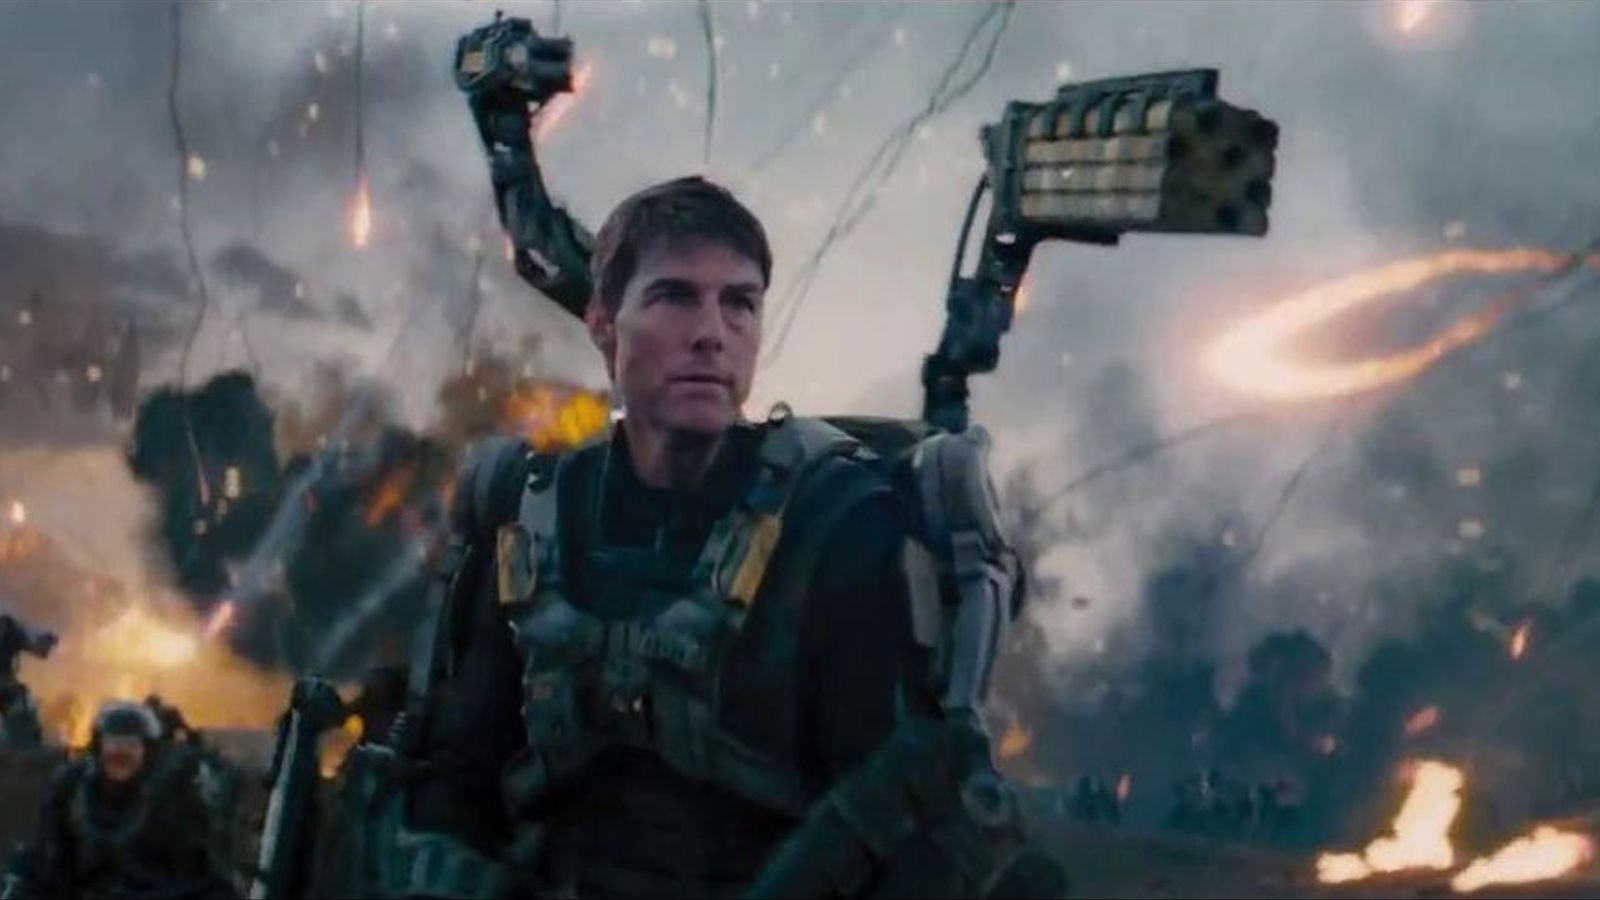 Tràiler d''Edge of tomorrow', amb Tom Cruise